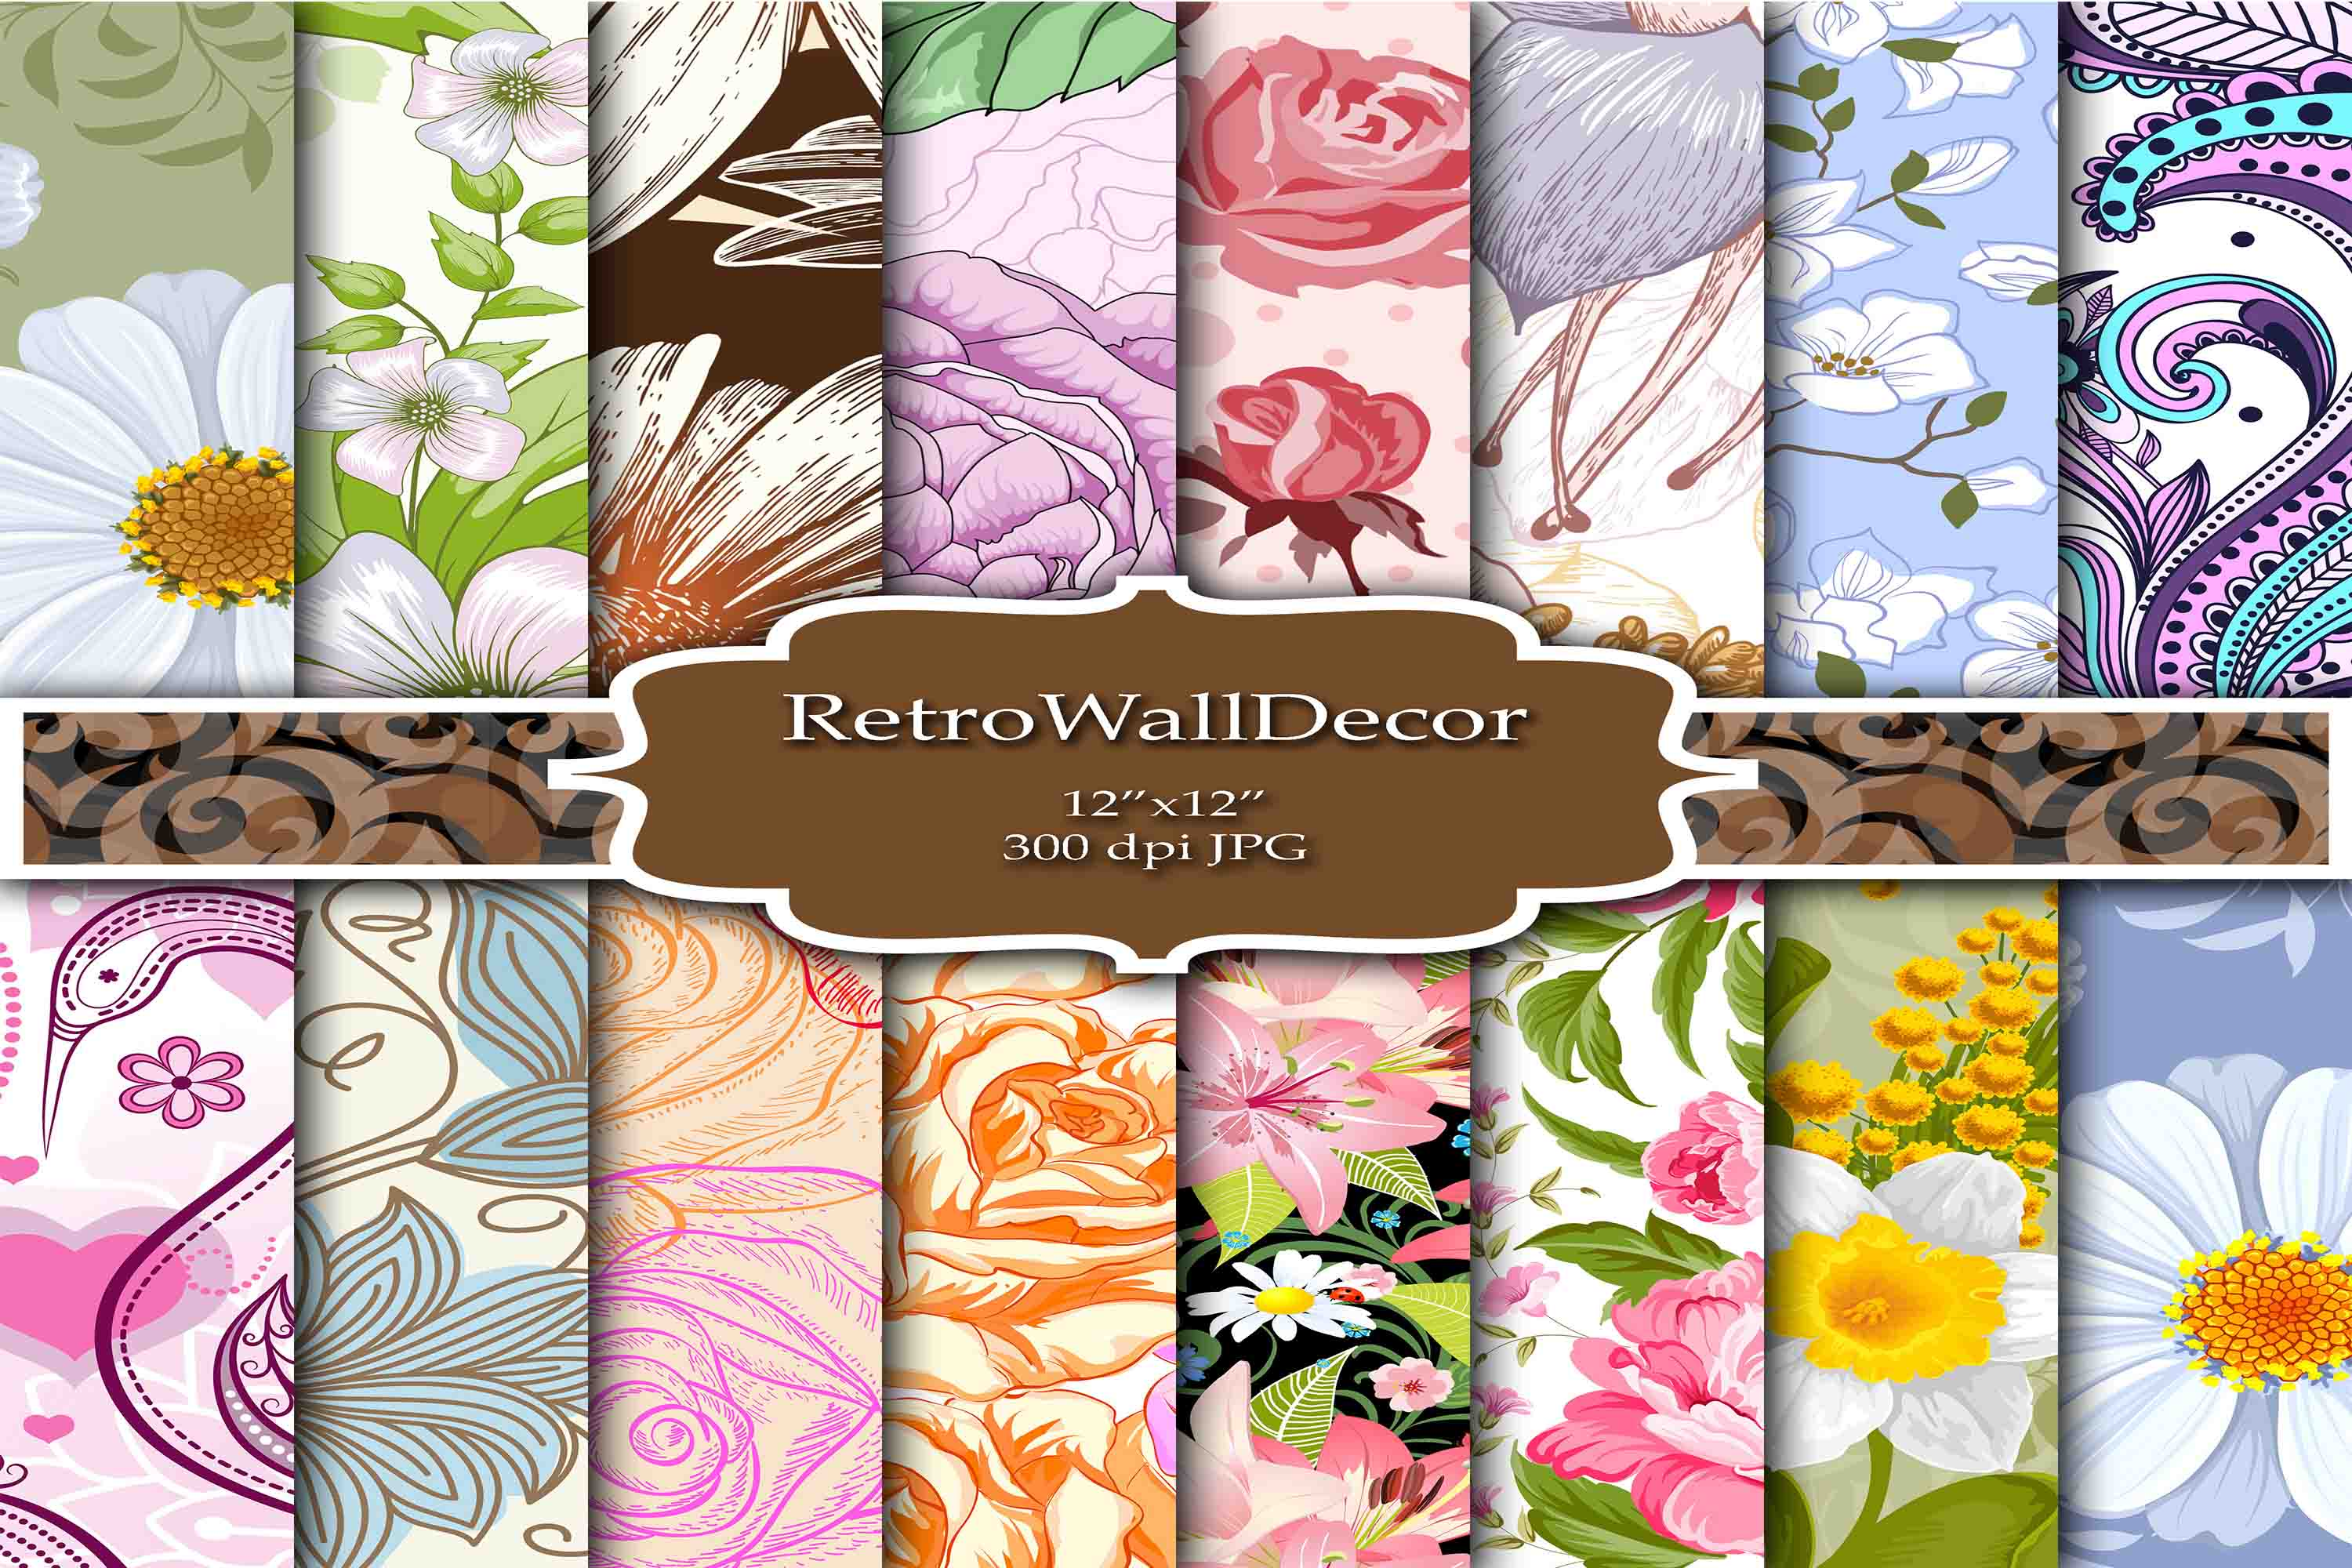 Download Free Floral Digital Colorful Papers Graphic By Retrowalldecor for Cricut Explore, Silhouette and other cutting machines.